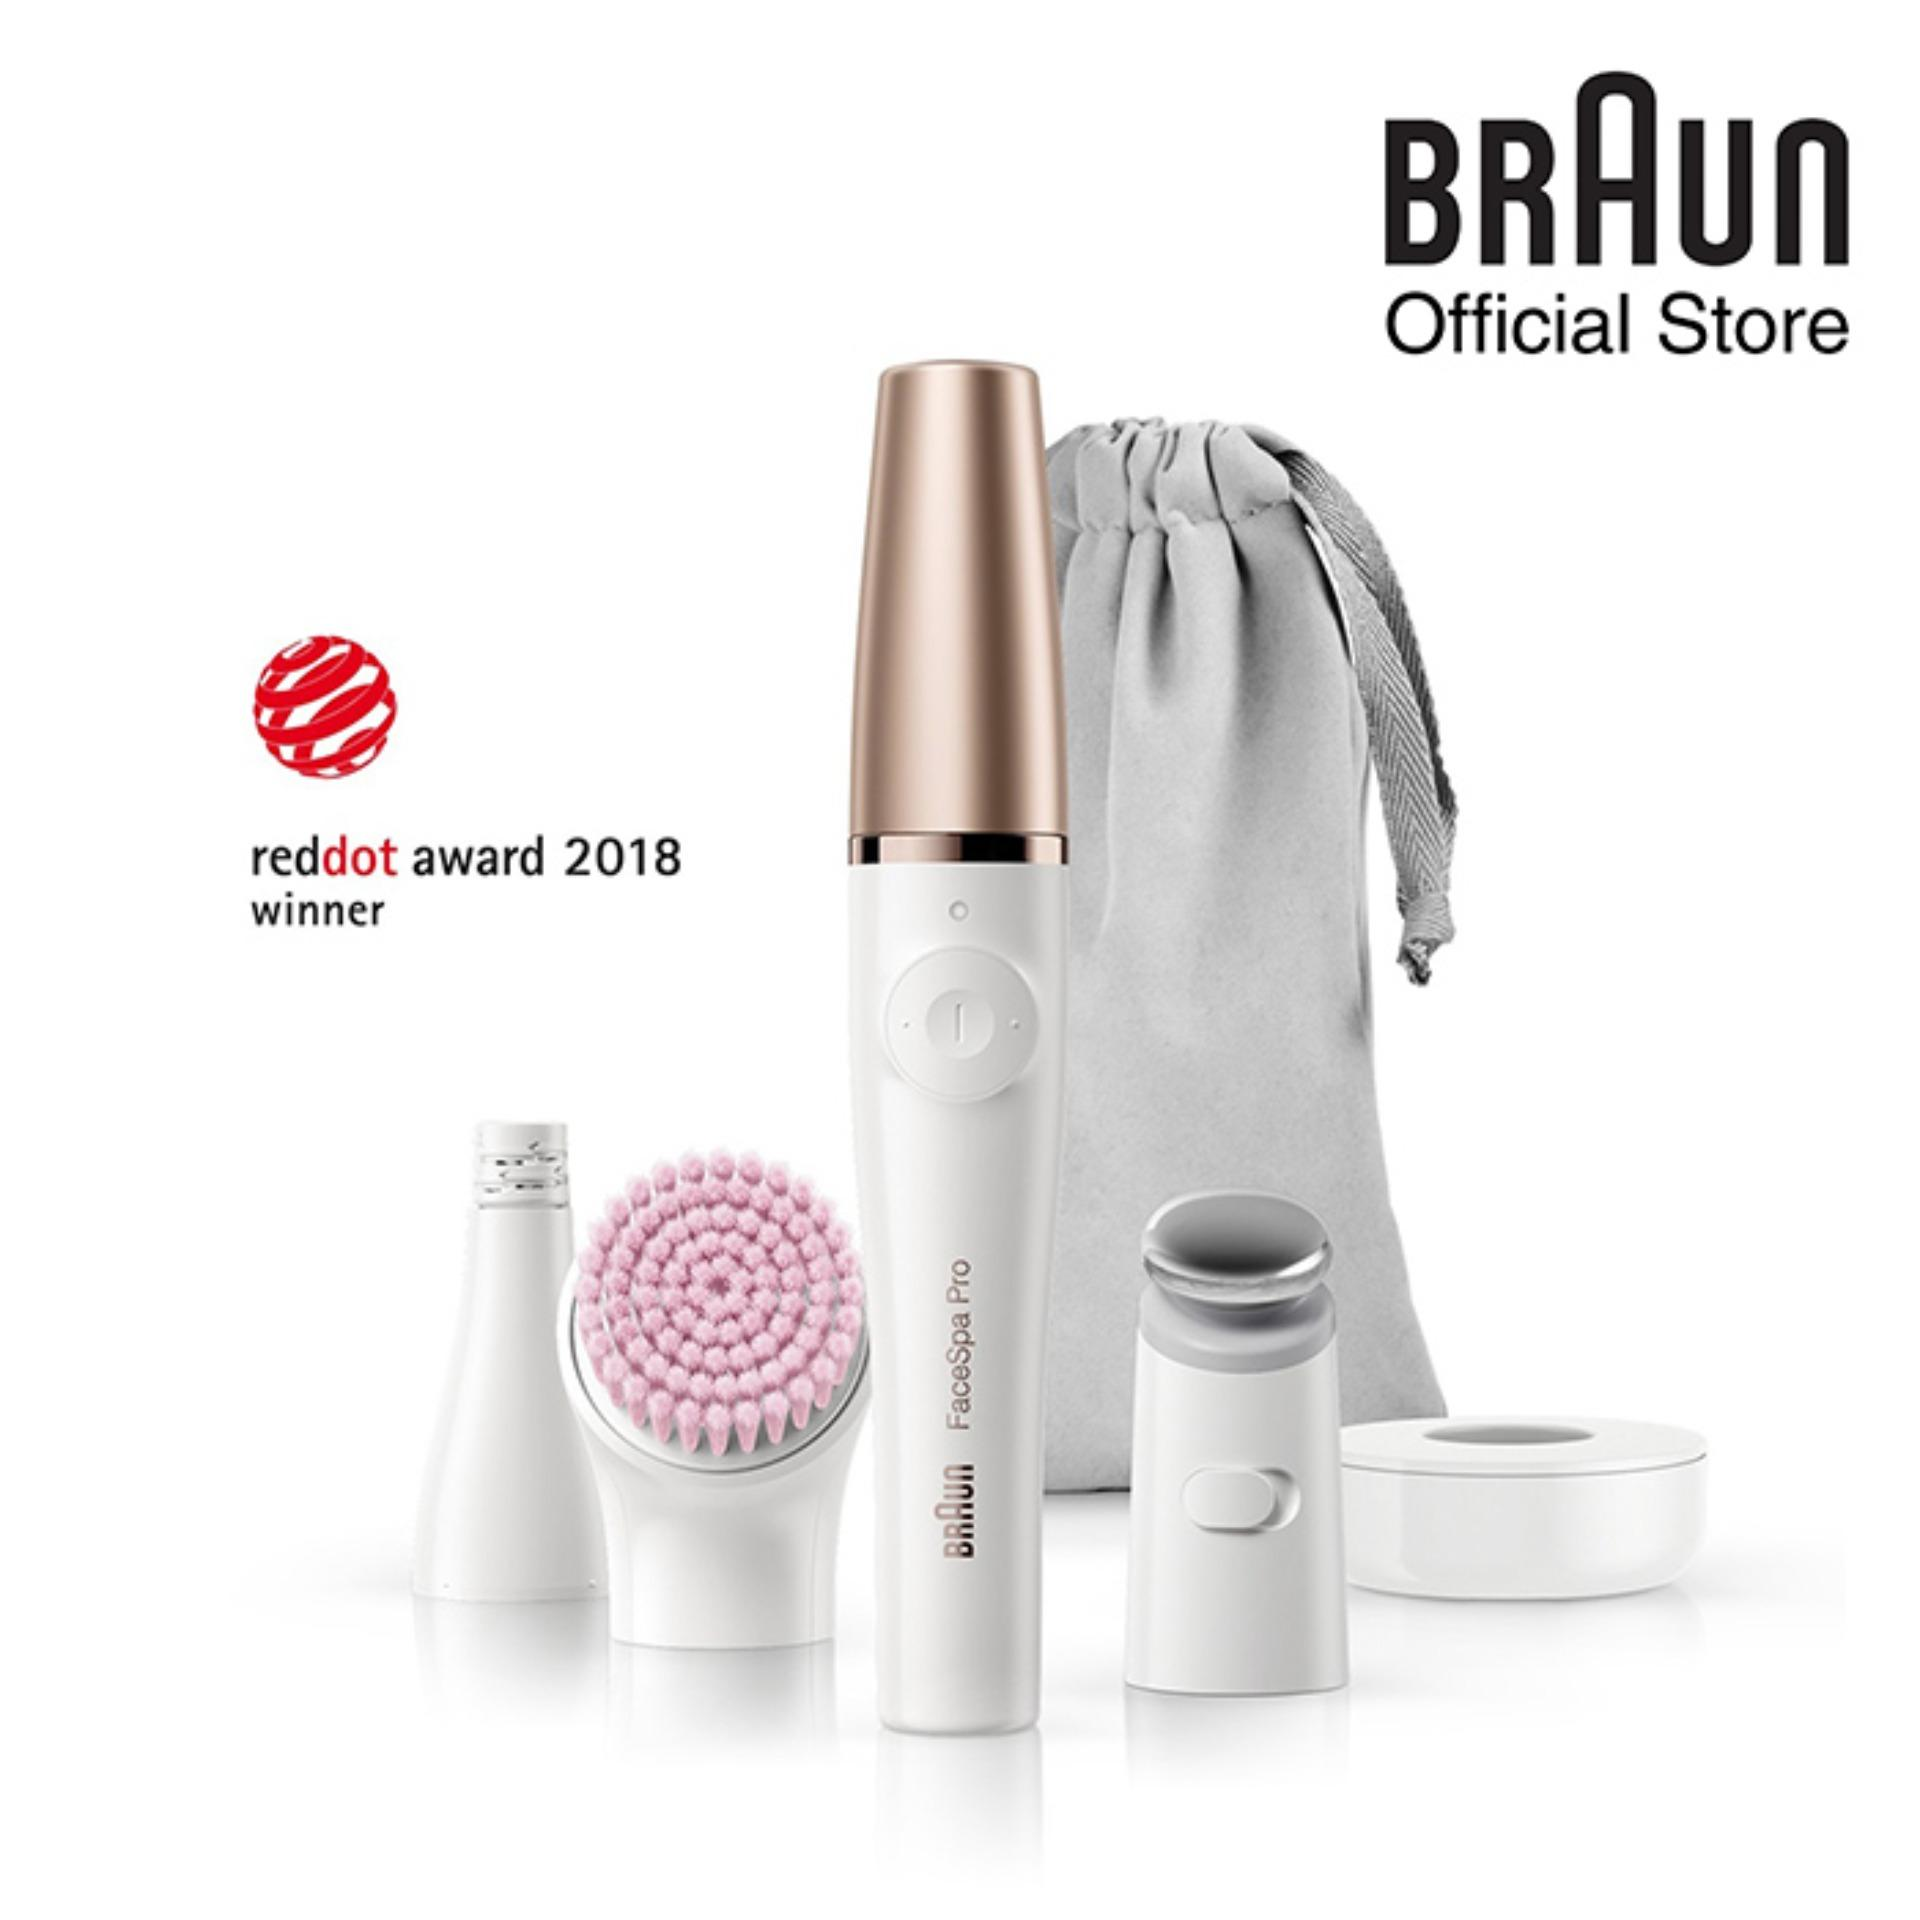 Braun Facespa Pro Se 912 Epilator – 3-In-1 Facial Epilator, Cleanser And Skin Toning System For Salon Beauty At Home By Braun Official Store.